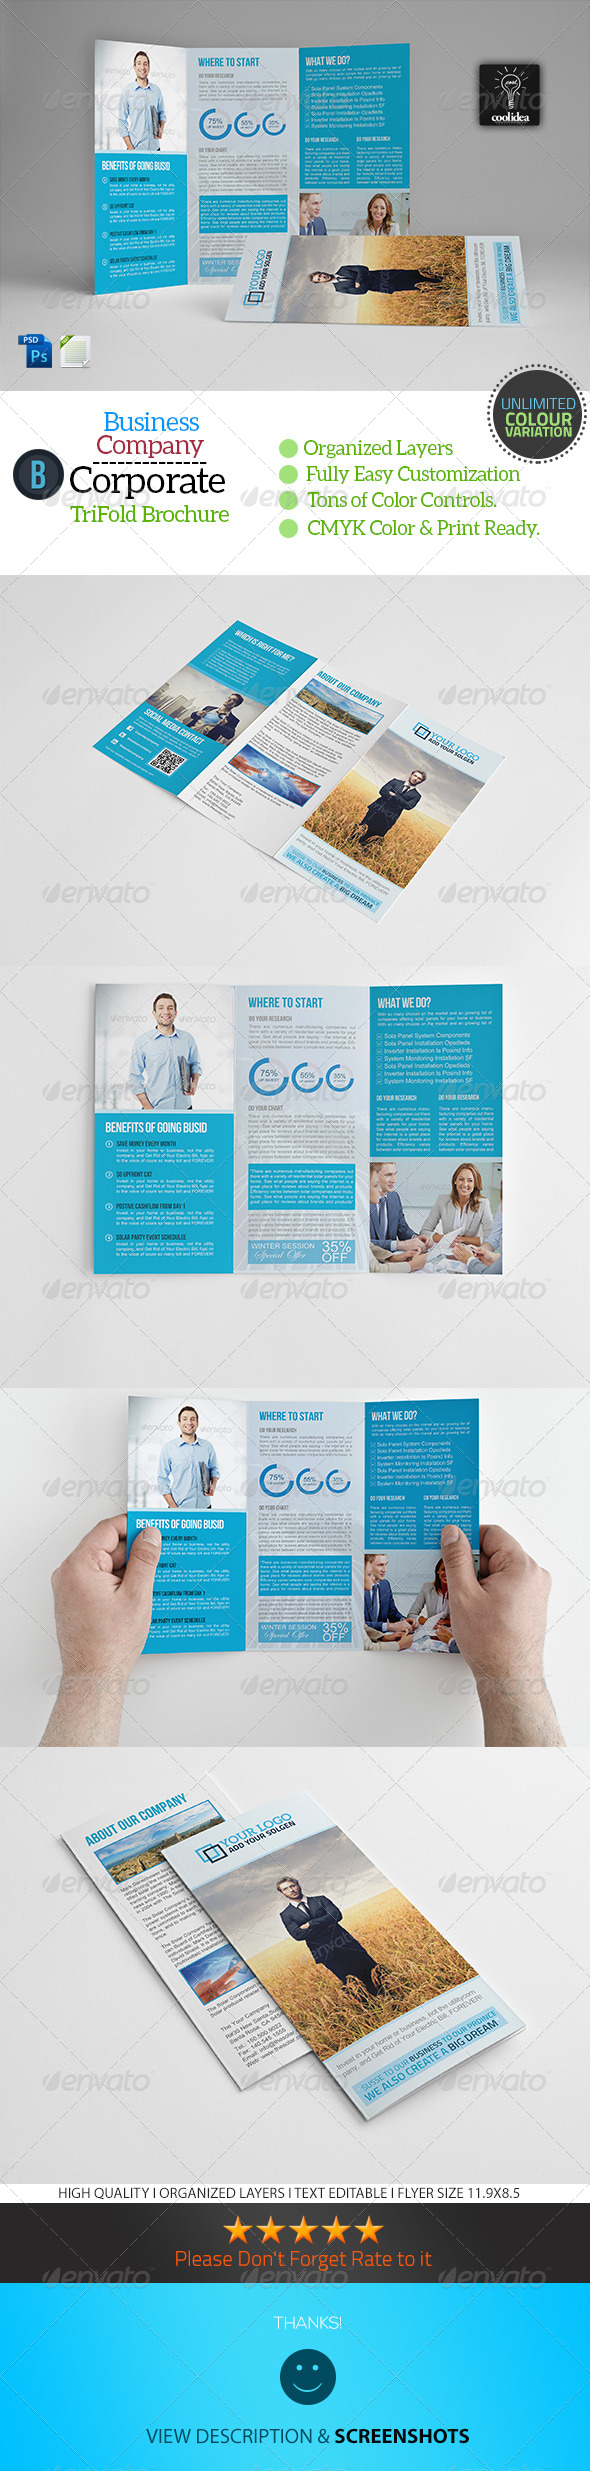 A4 Trifold Business Brochure Template - Corporate Brochures